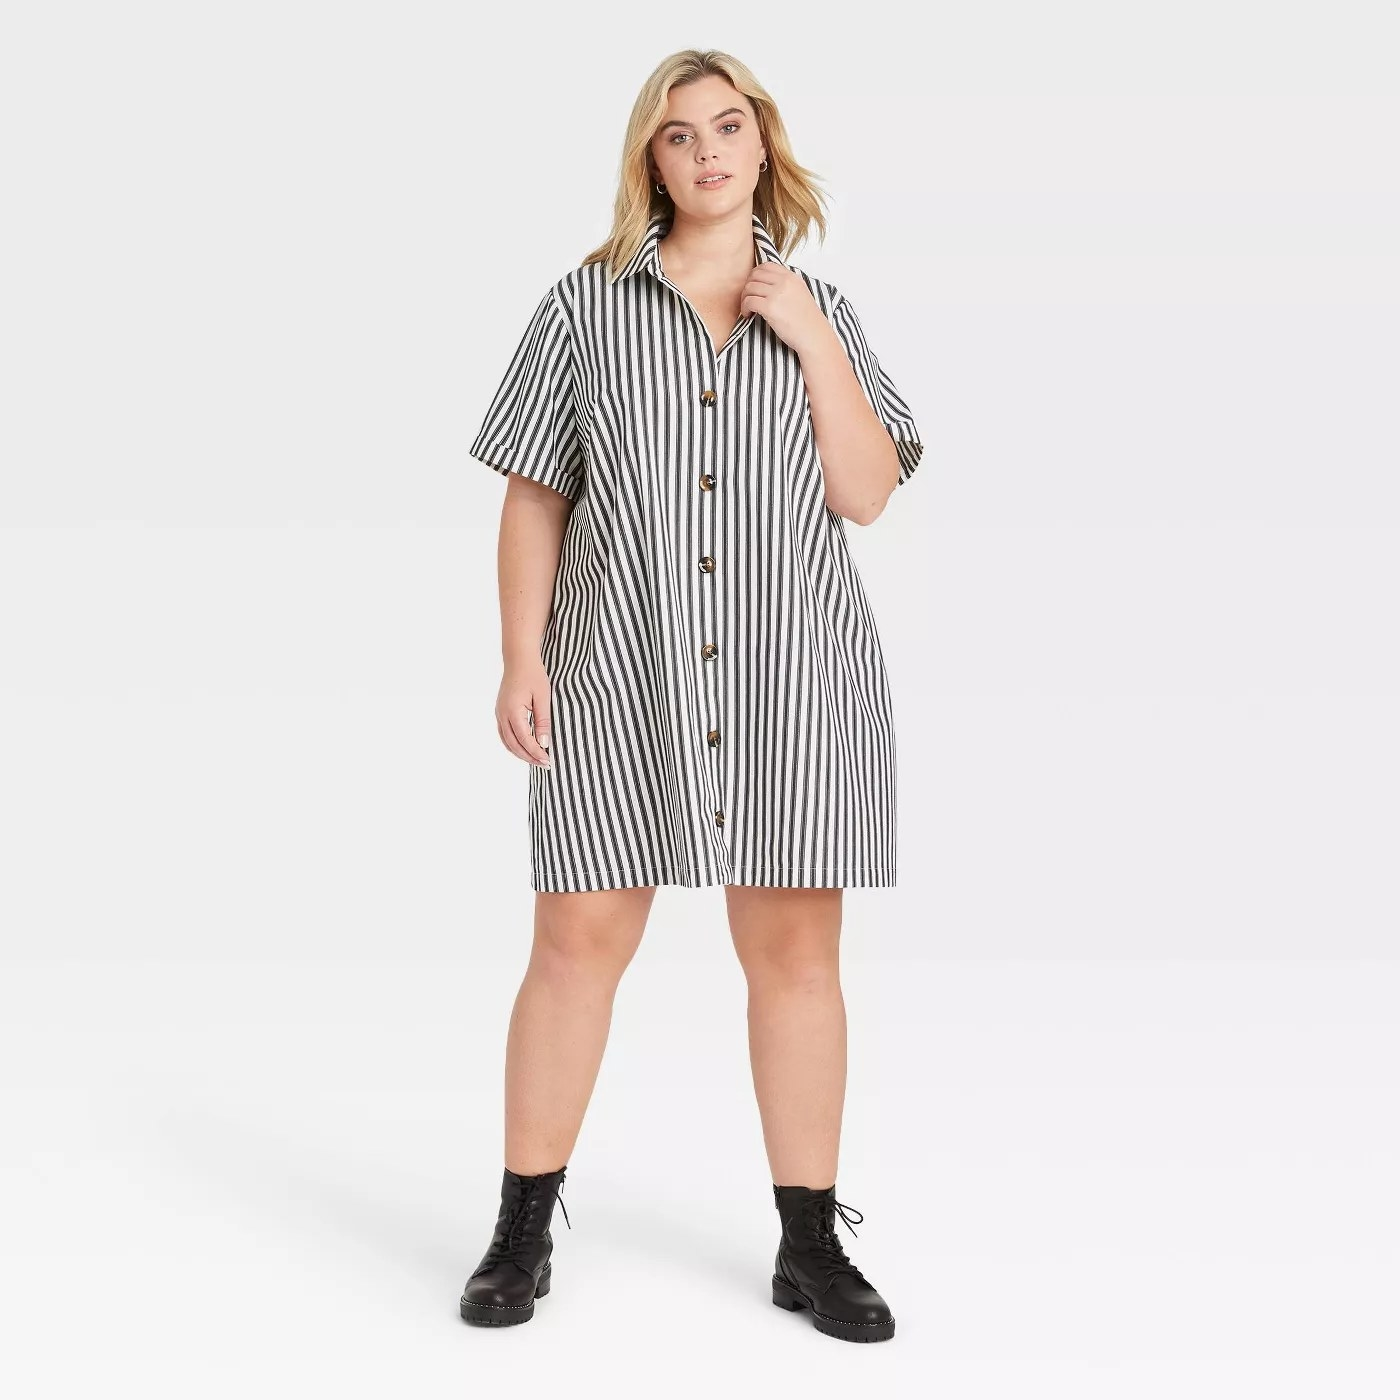 Model in striped dress with buttons down the front